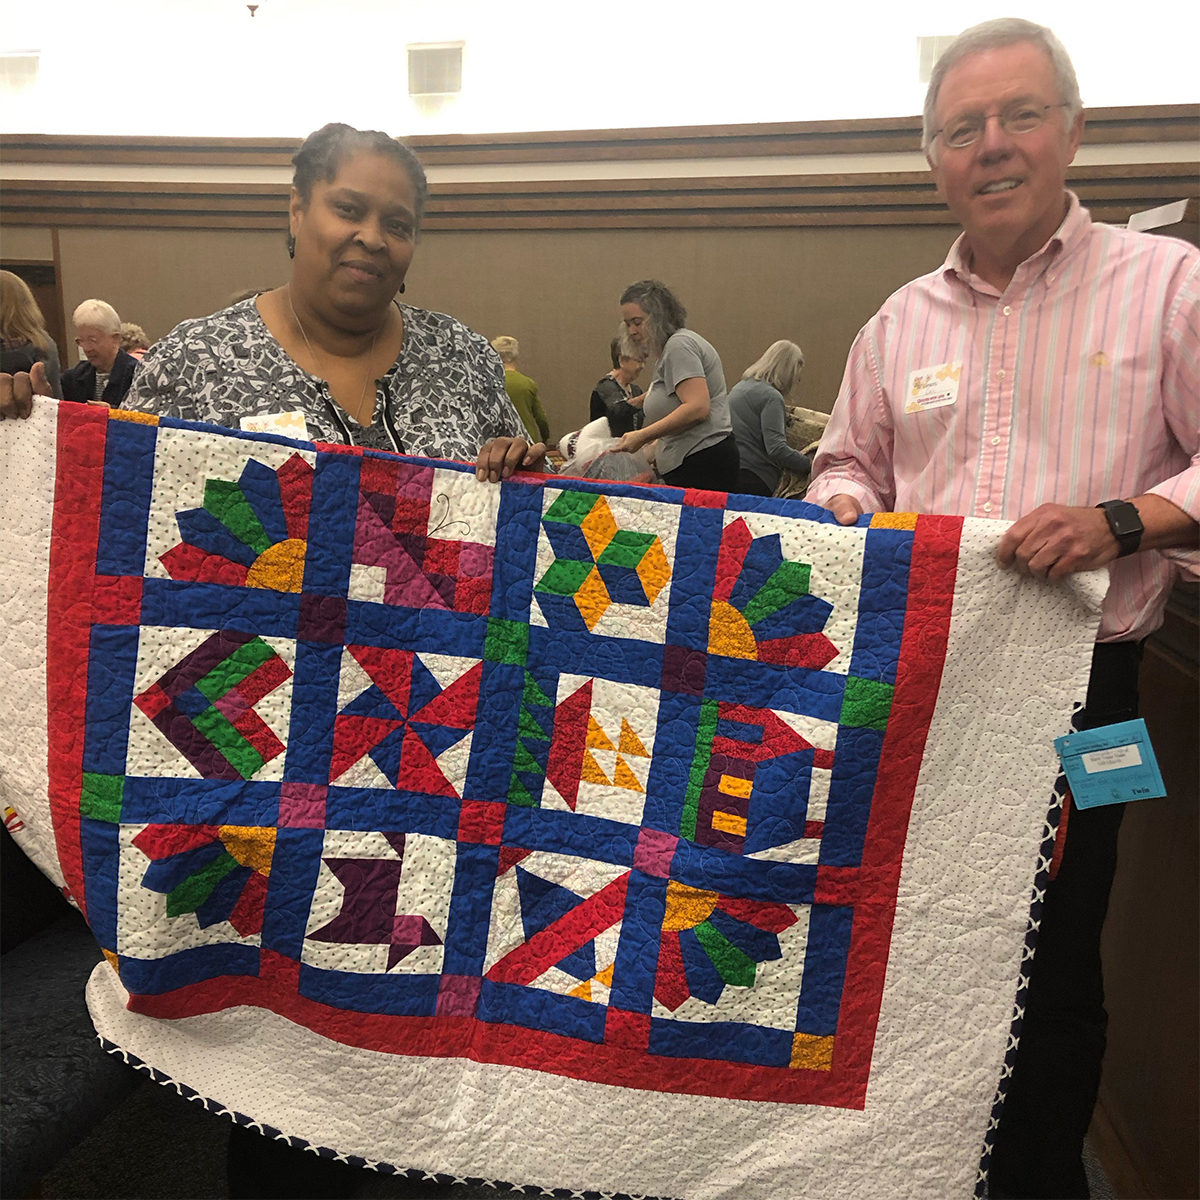 2020 Vision Quilted with Love